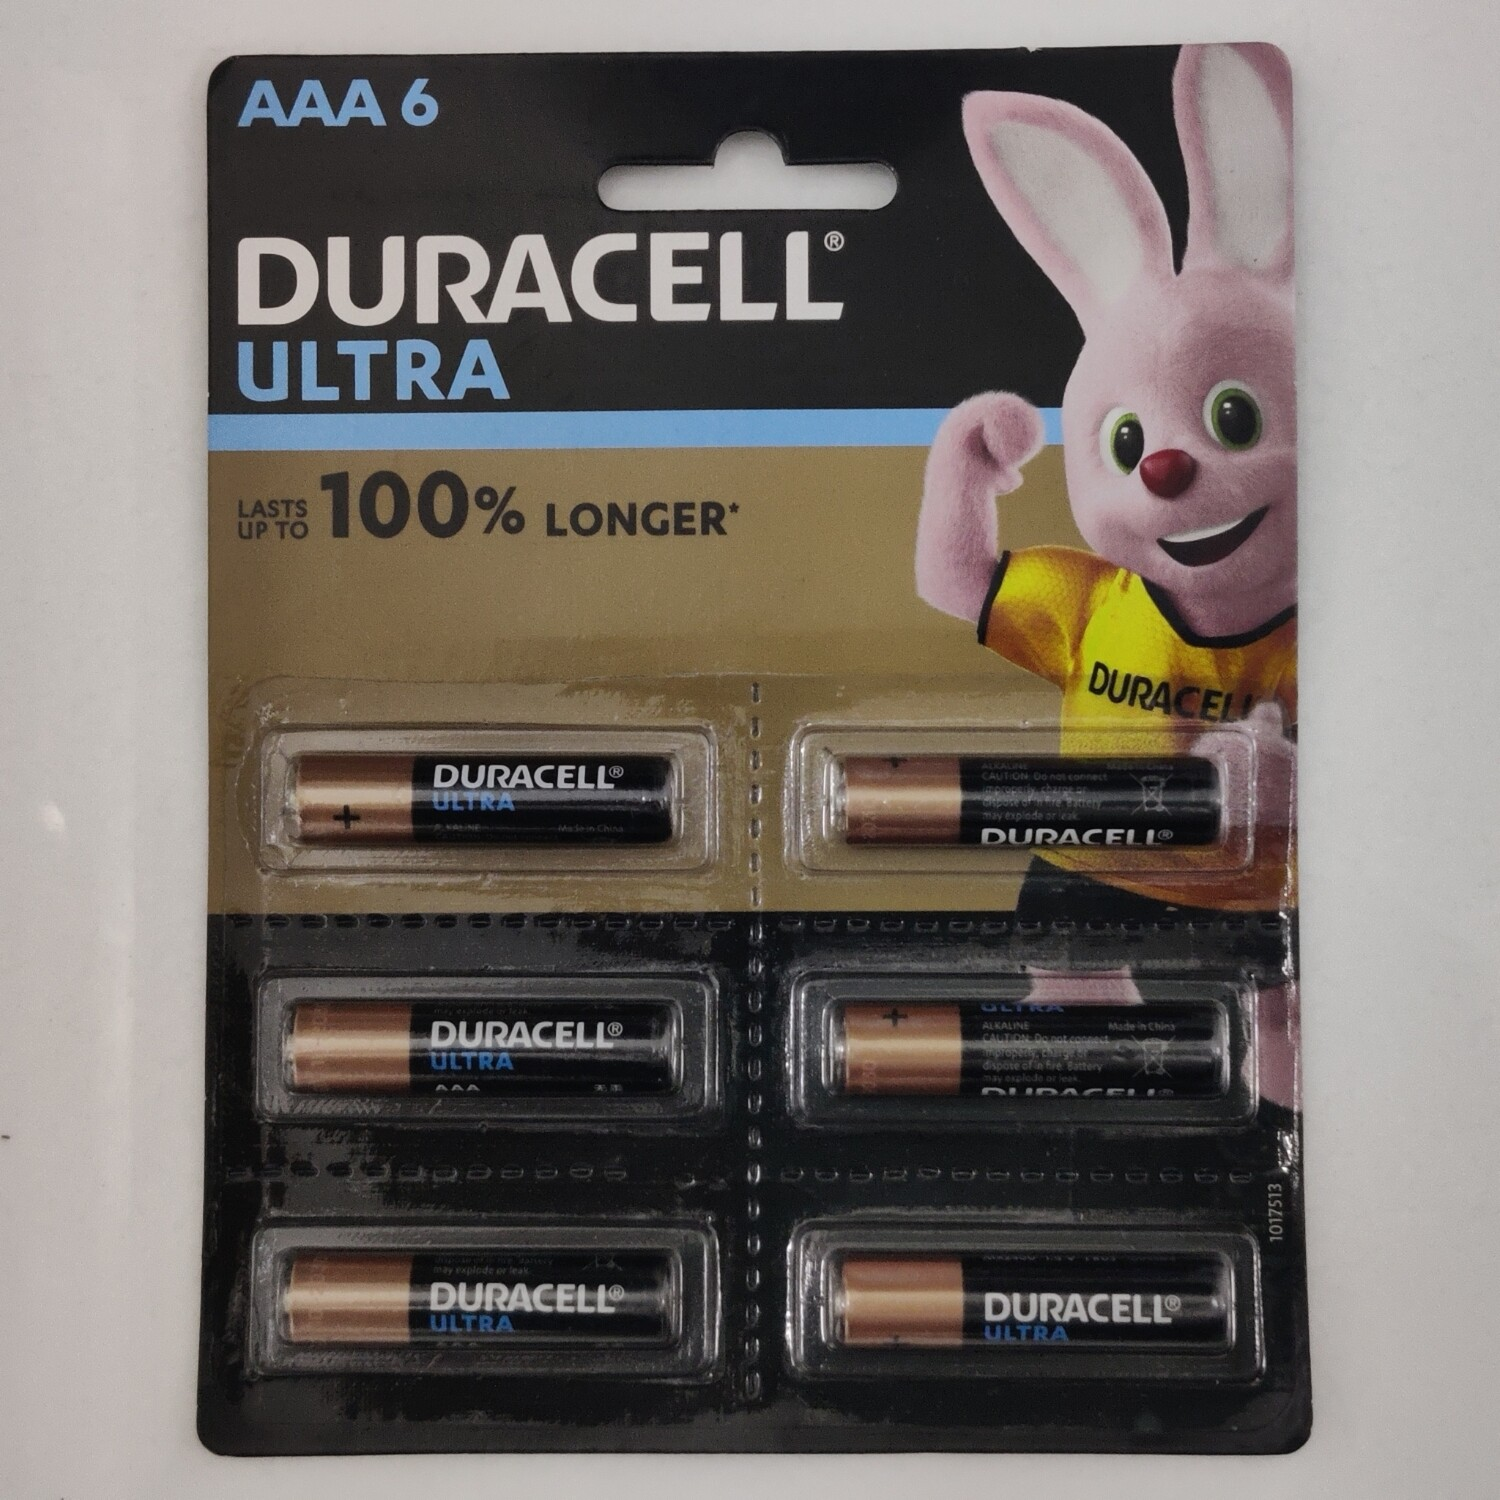 Duracell Ultra AAA, 6 Batteries